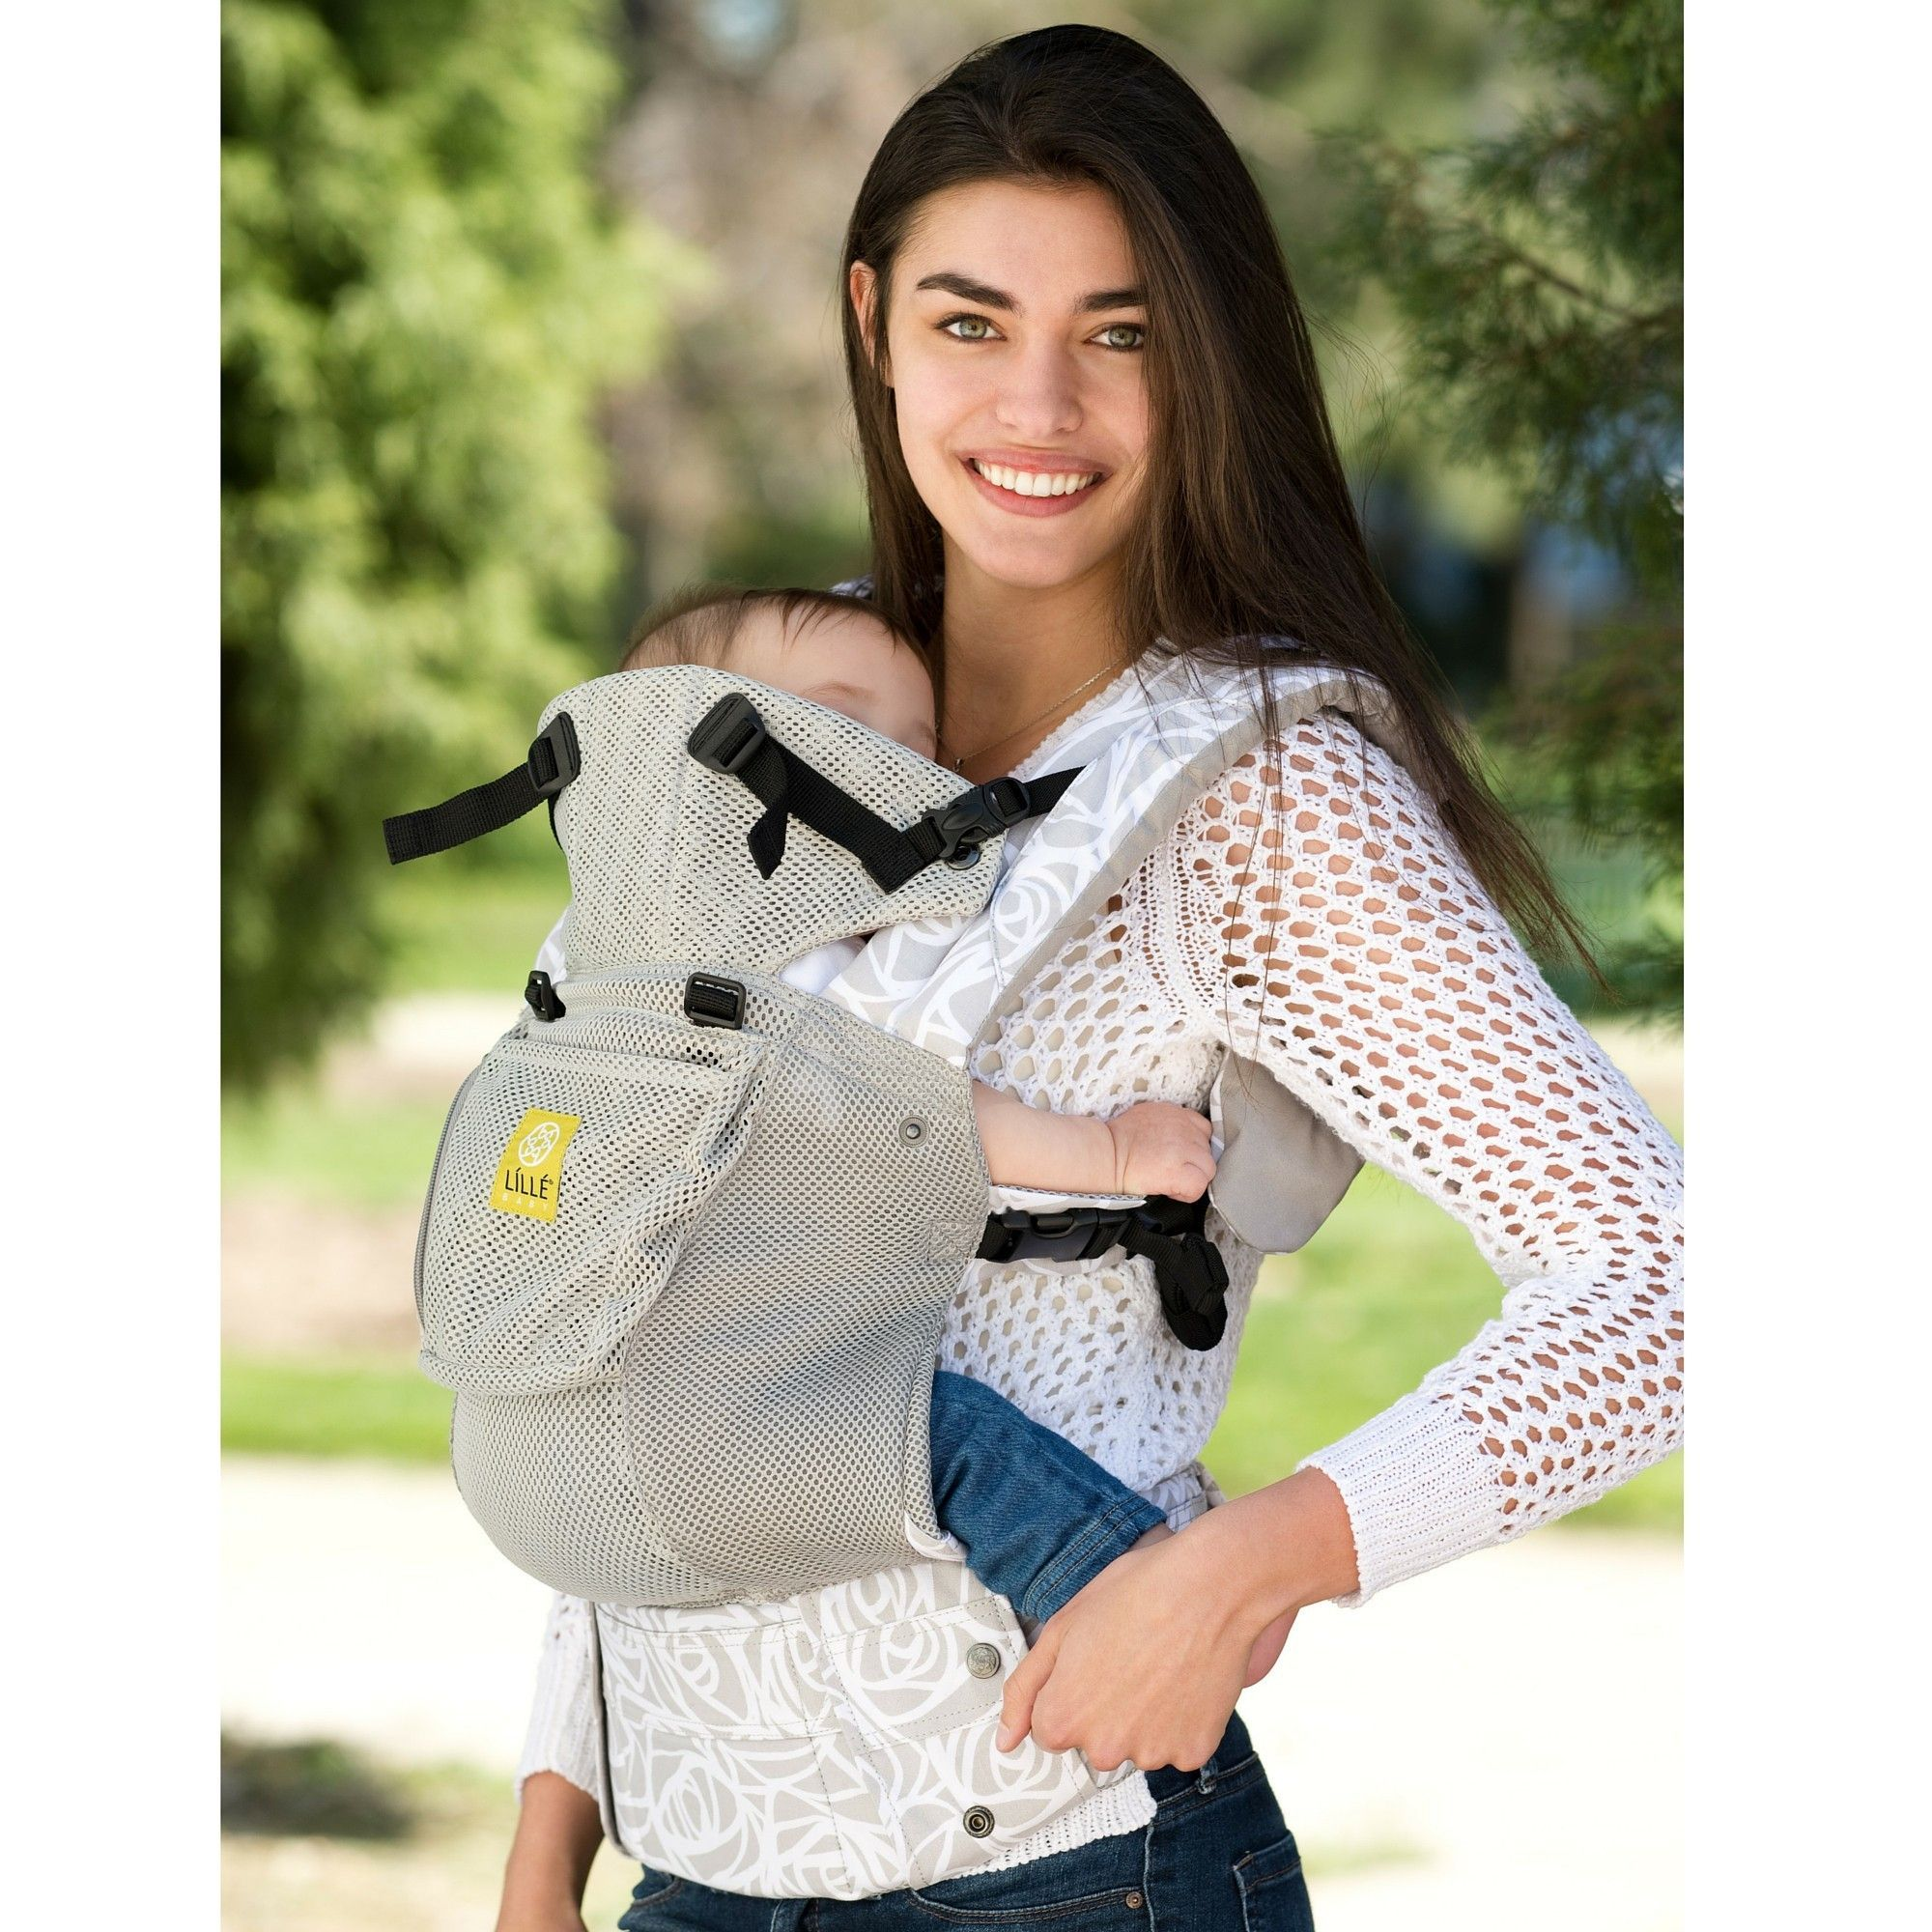 aa483d5a27e Lillebaby Complete Airflow Baby Carrier - Frosted Rose